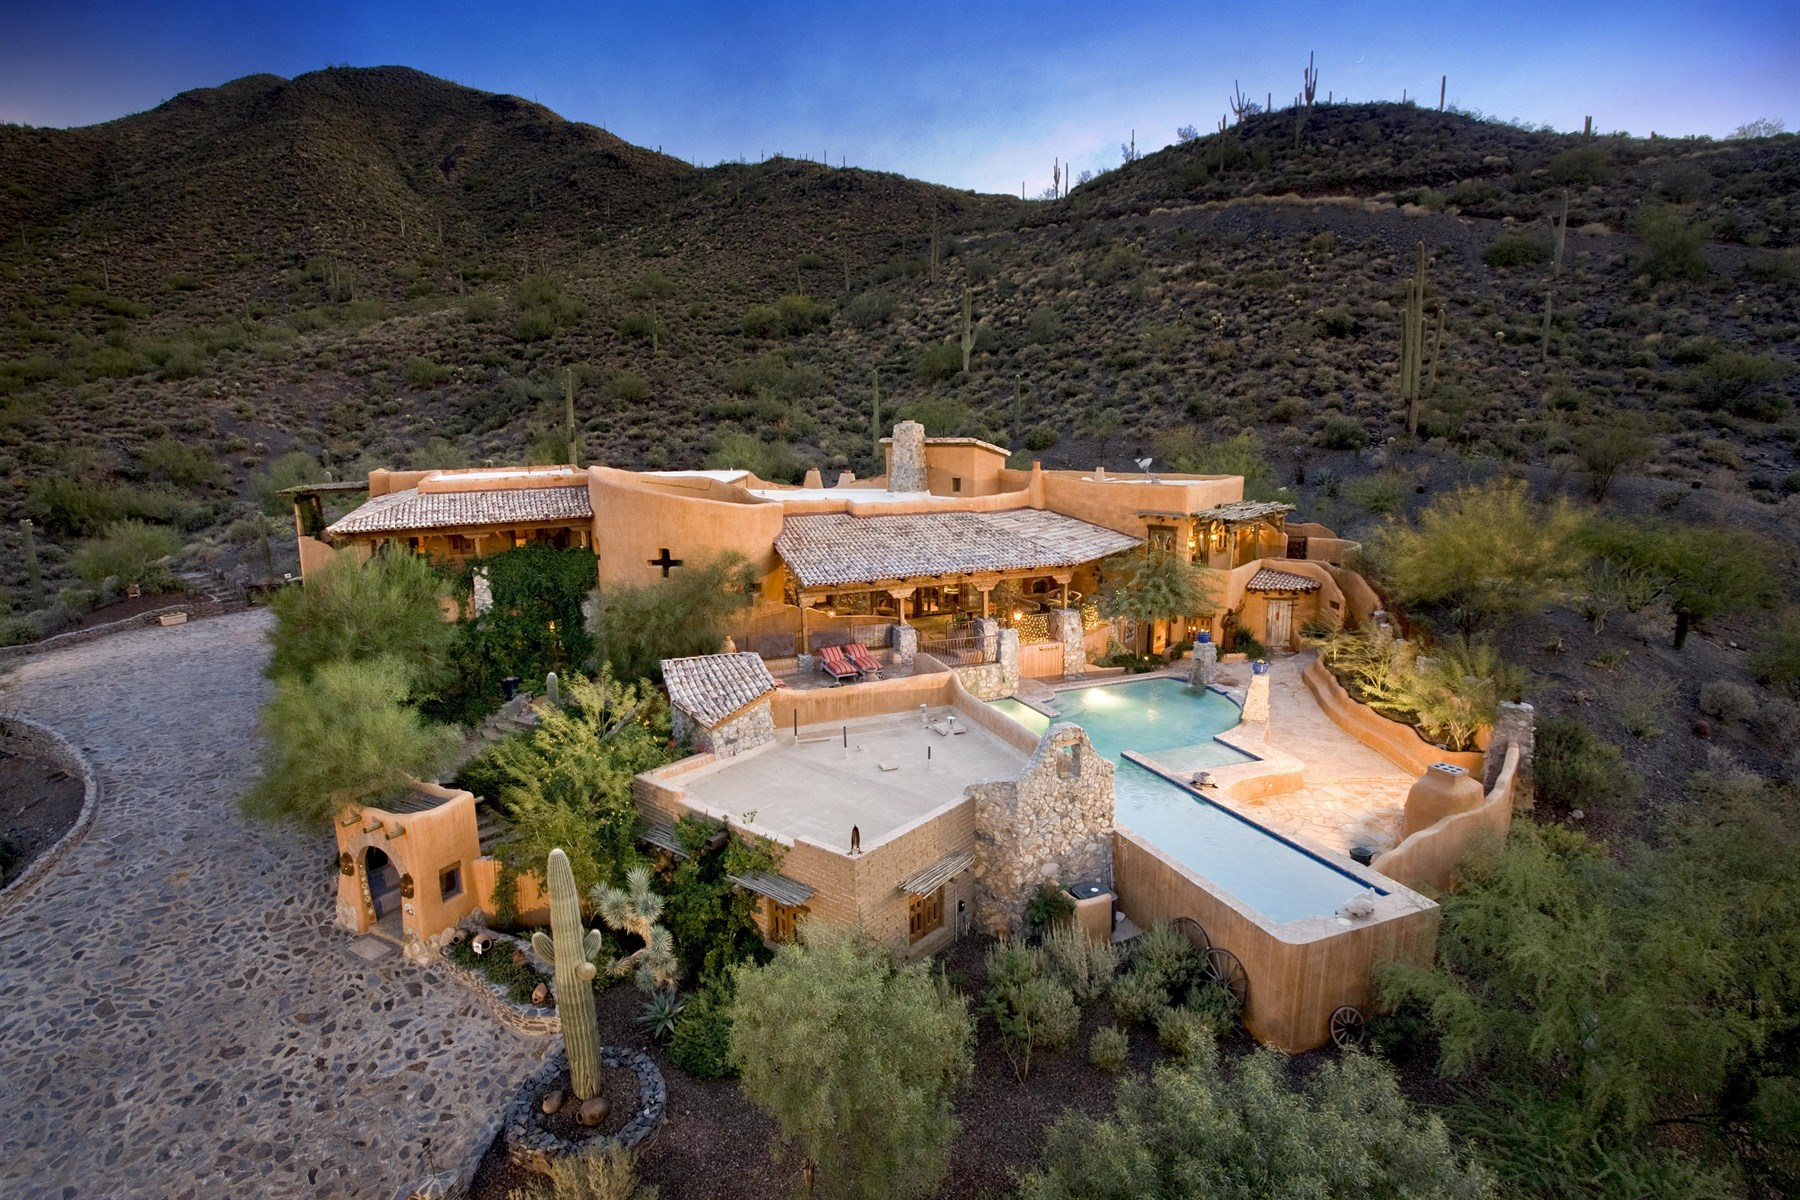 Single Family Home for Sale at Stunning spanish authentic with breathtaking views 37405 N School House Rd Cave Creek, Arizona, 85331 United States